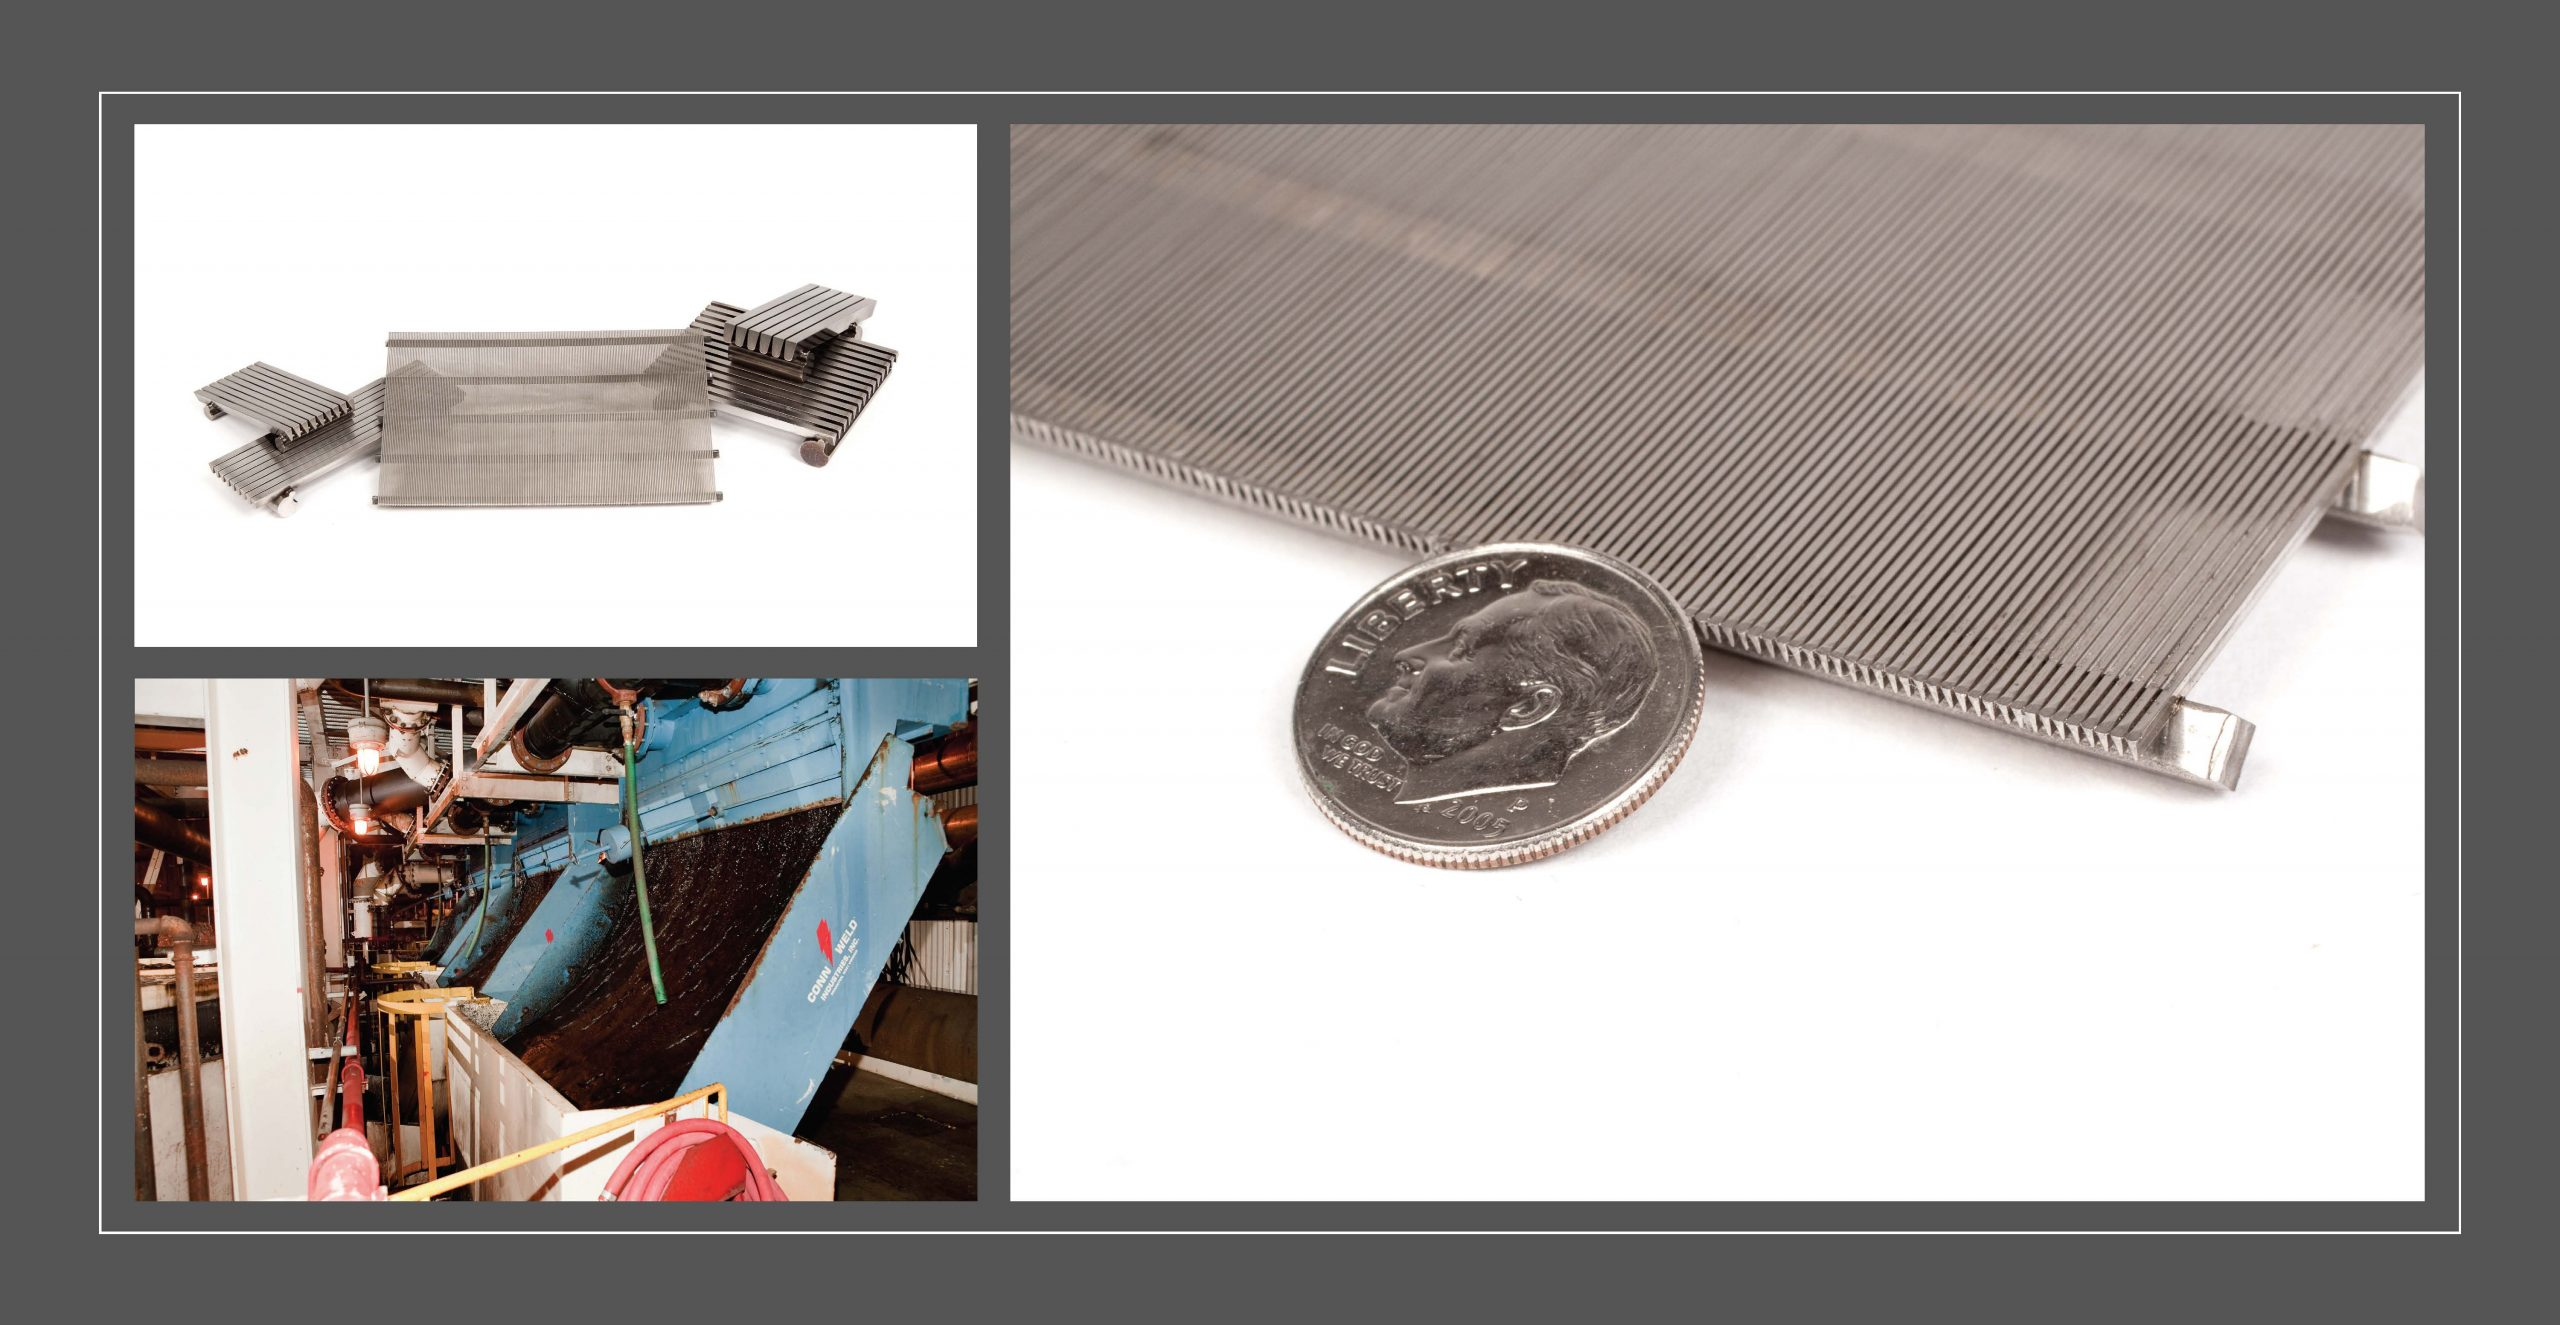 Profile wire screen panel samples, profile wire sieve in coal application